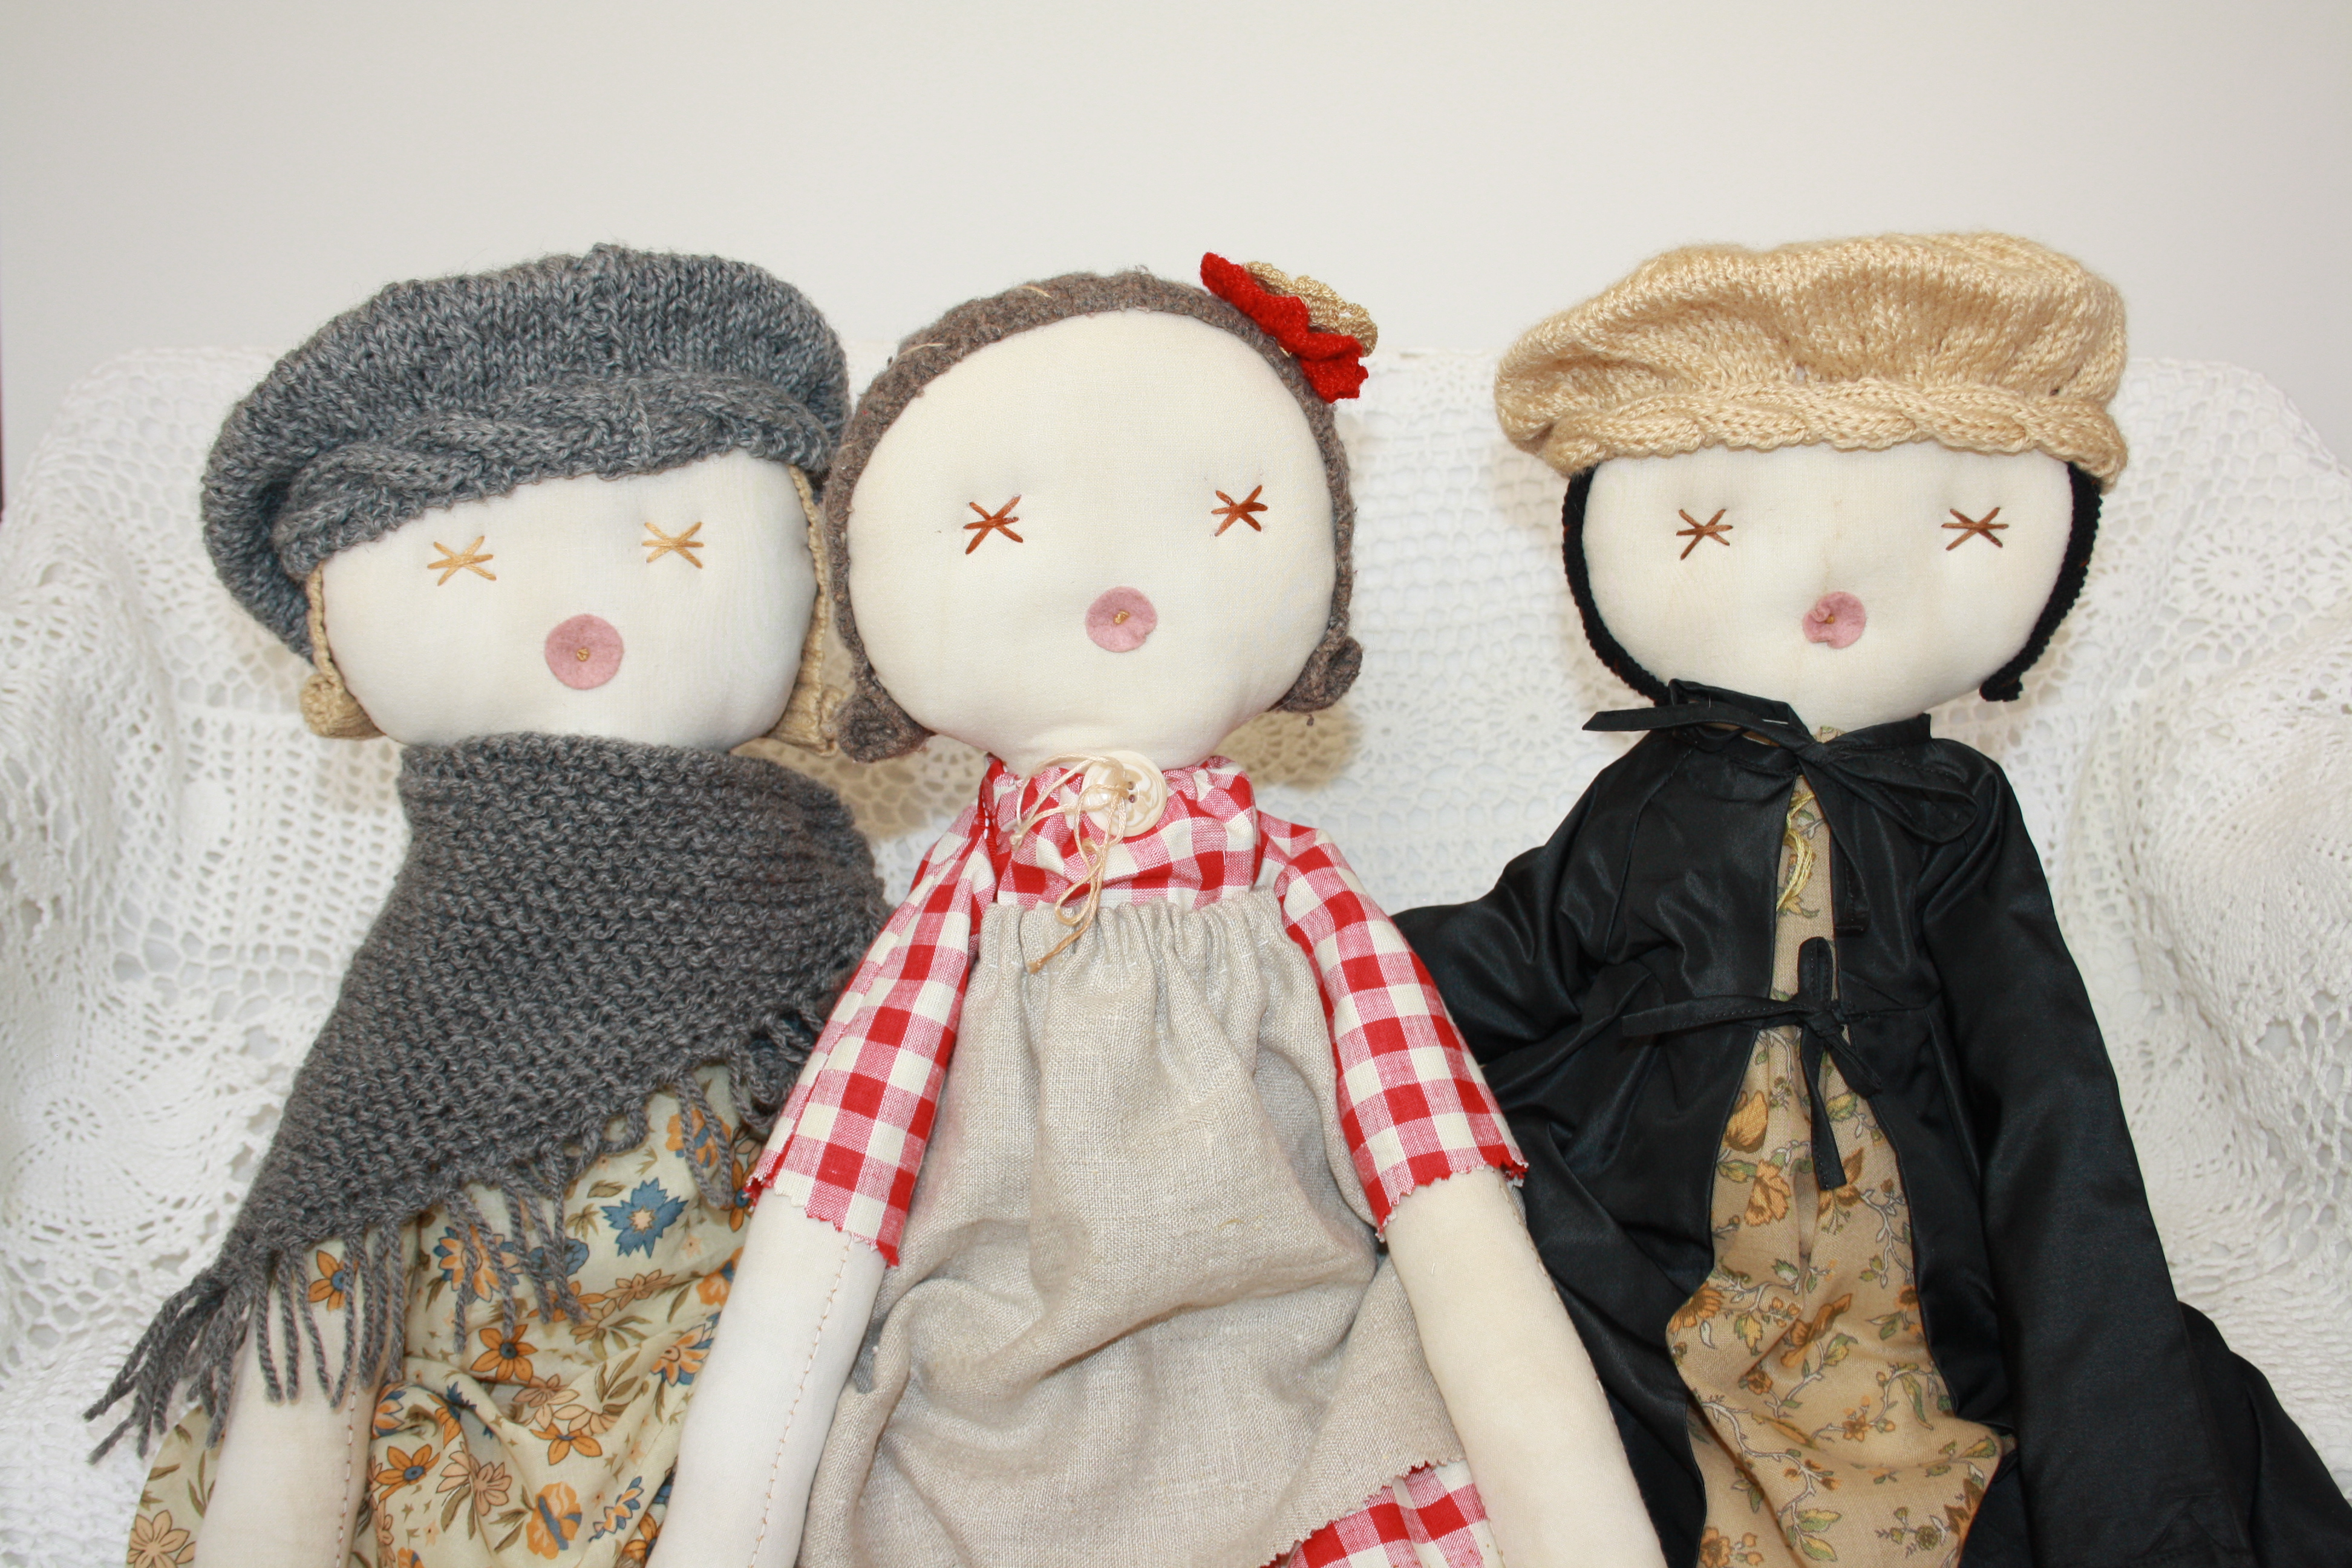 French antique handmade dolls heart handmade blog for How to sell handmade crafts on facebook